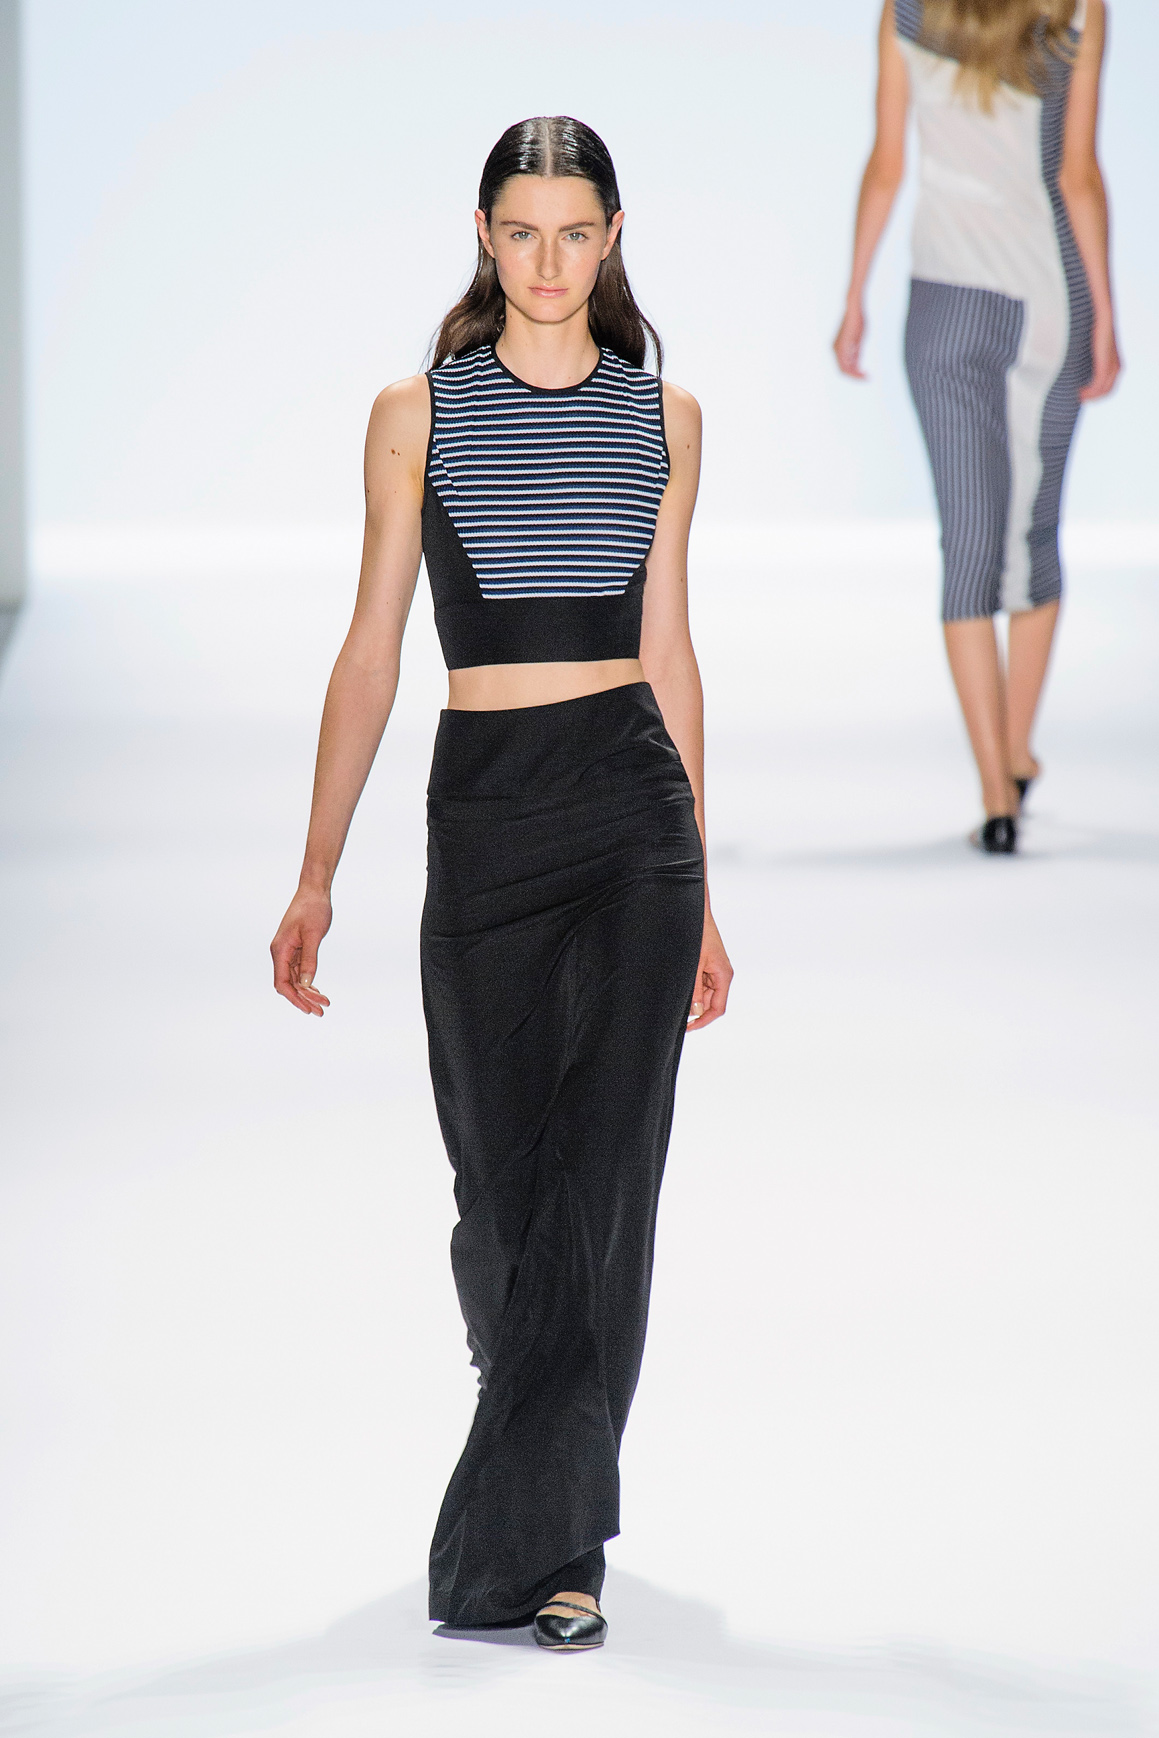 Hourglass Figure: Crop Tops & Cut-Outs at Richard Chai Love